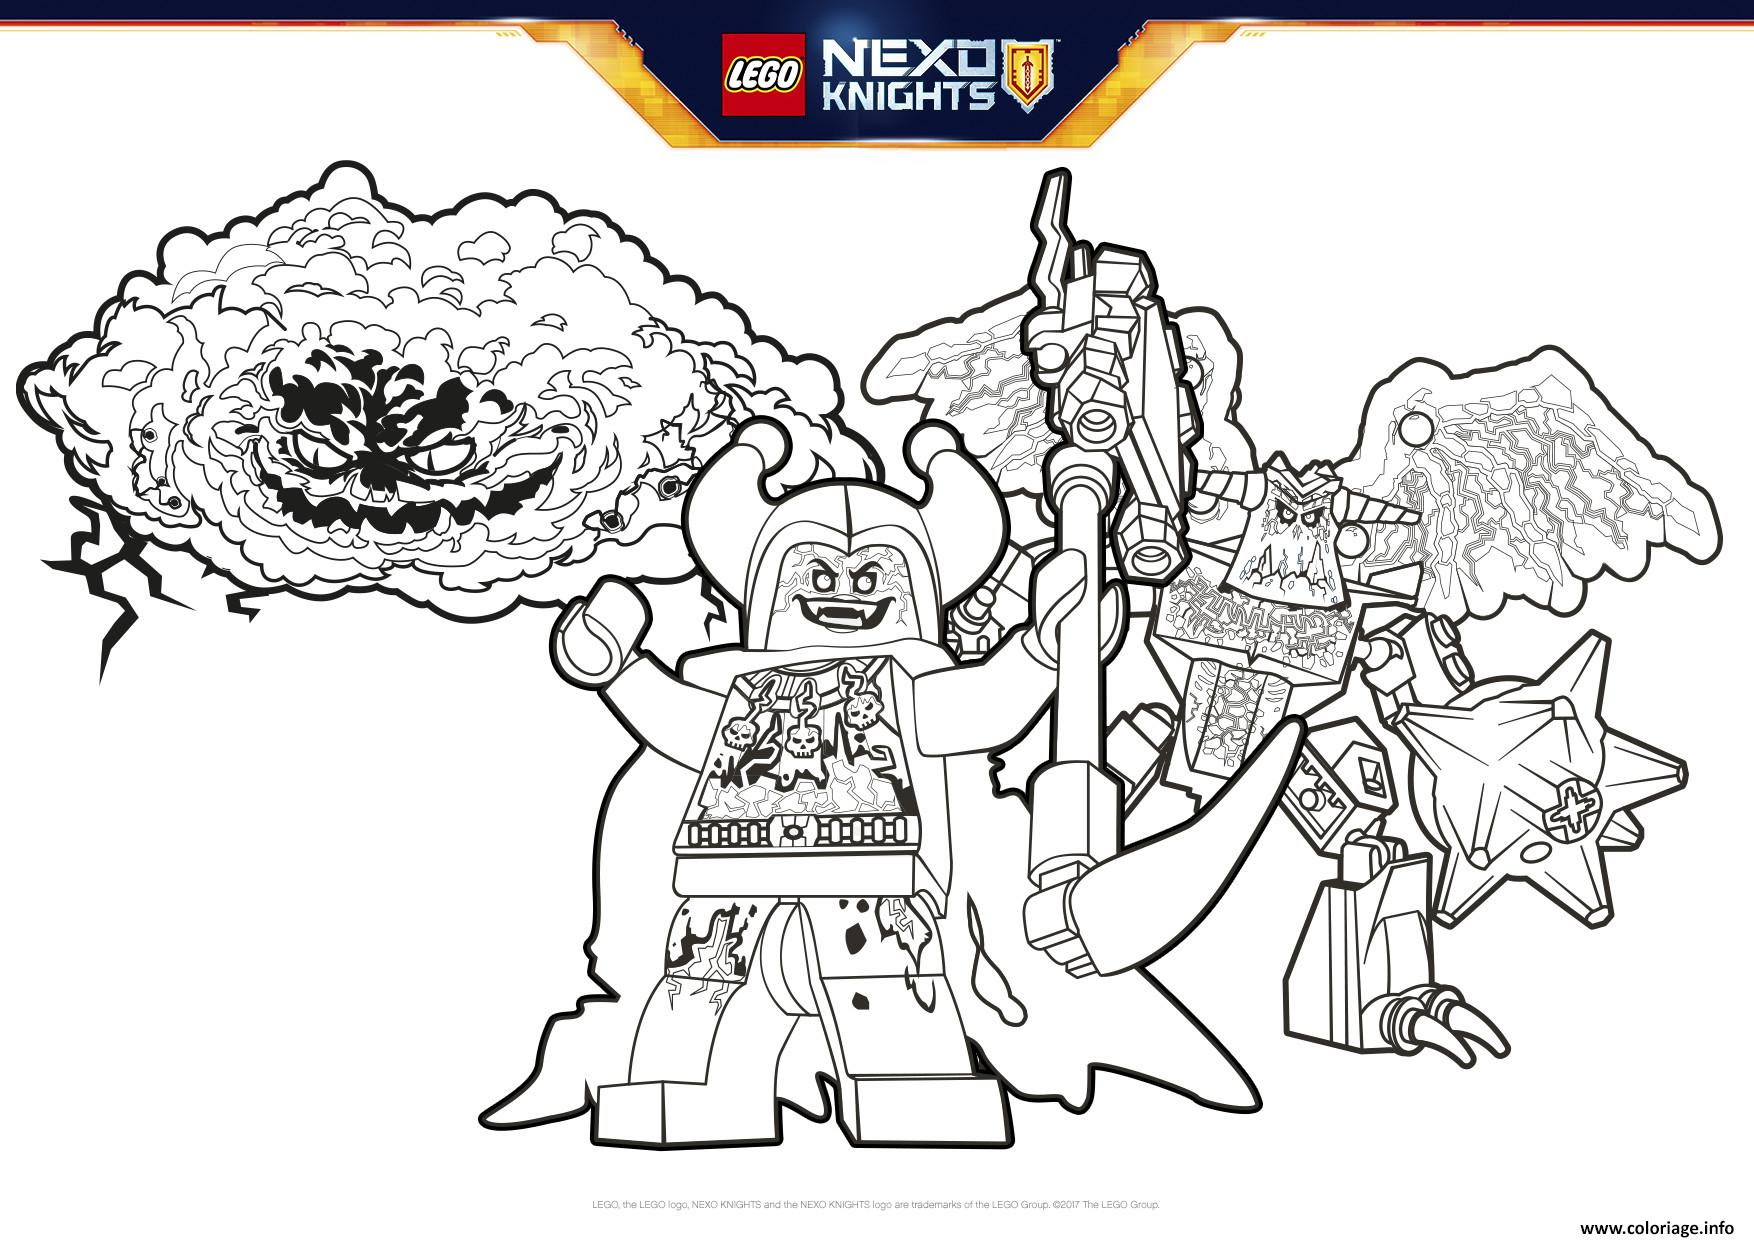 Coloriage Lego Nexo Knights Badguys Formation Jecoloriecom